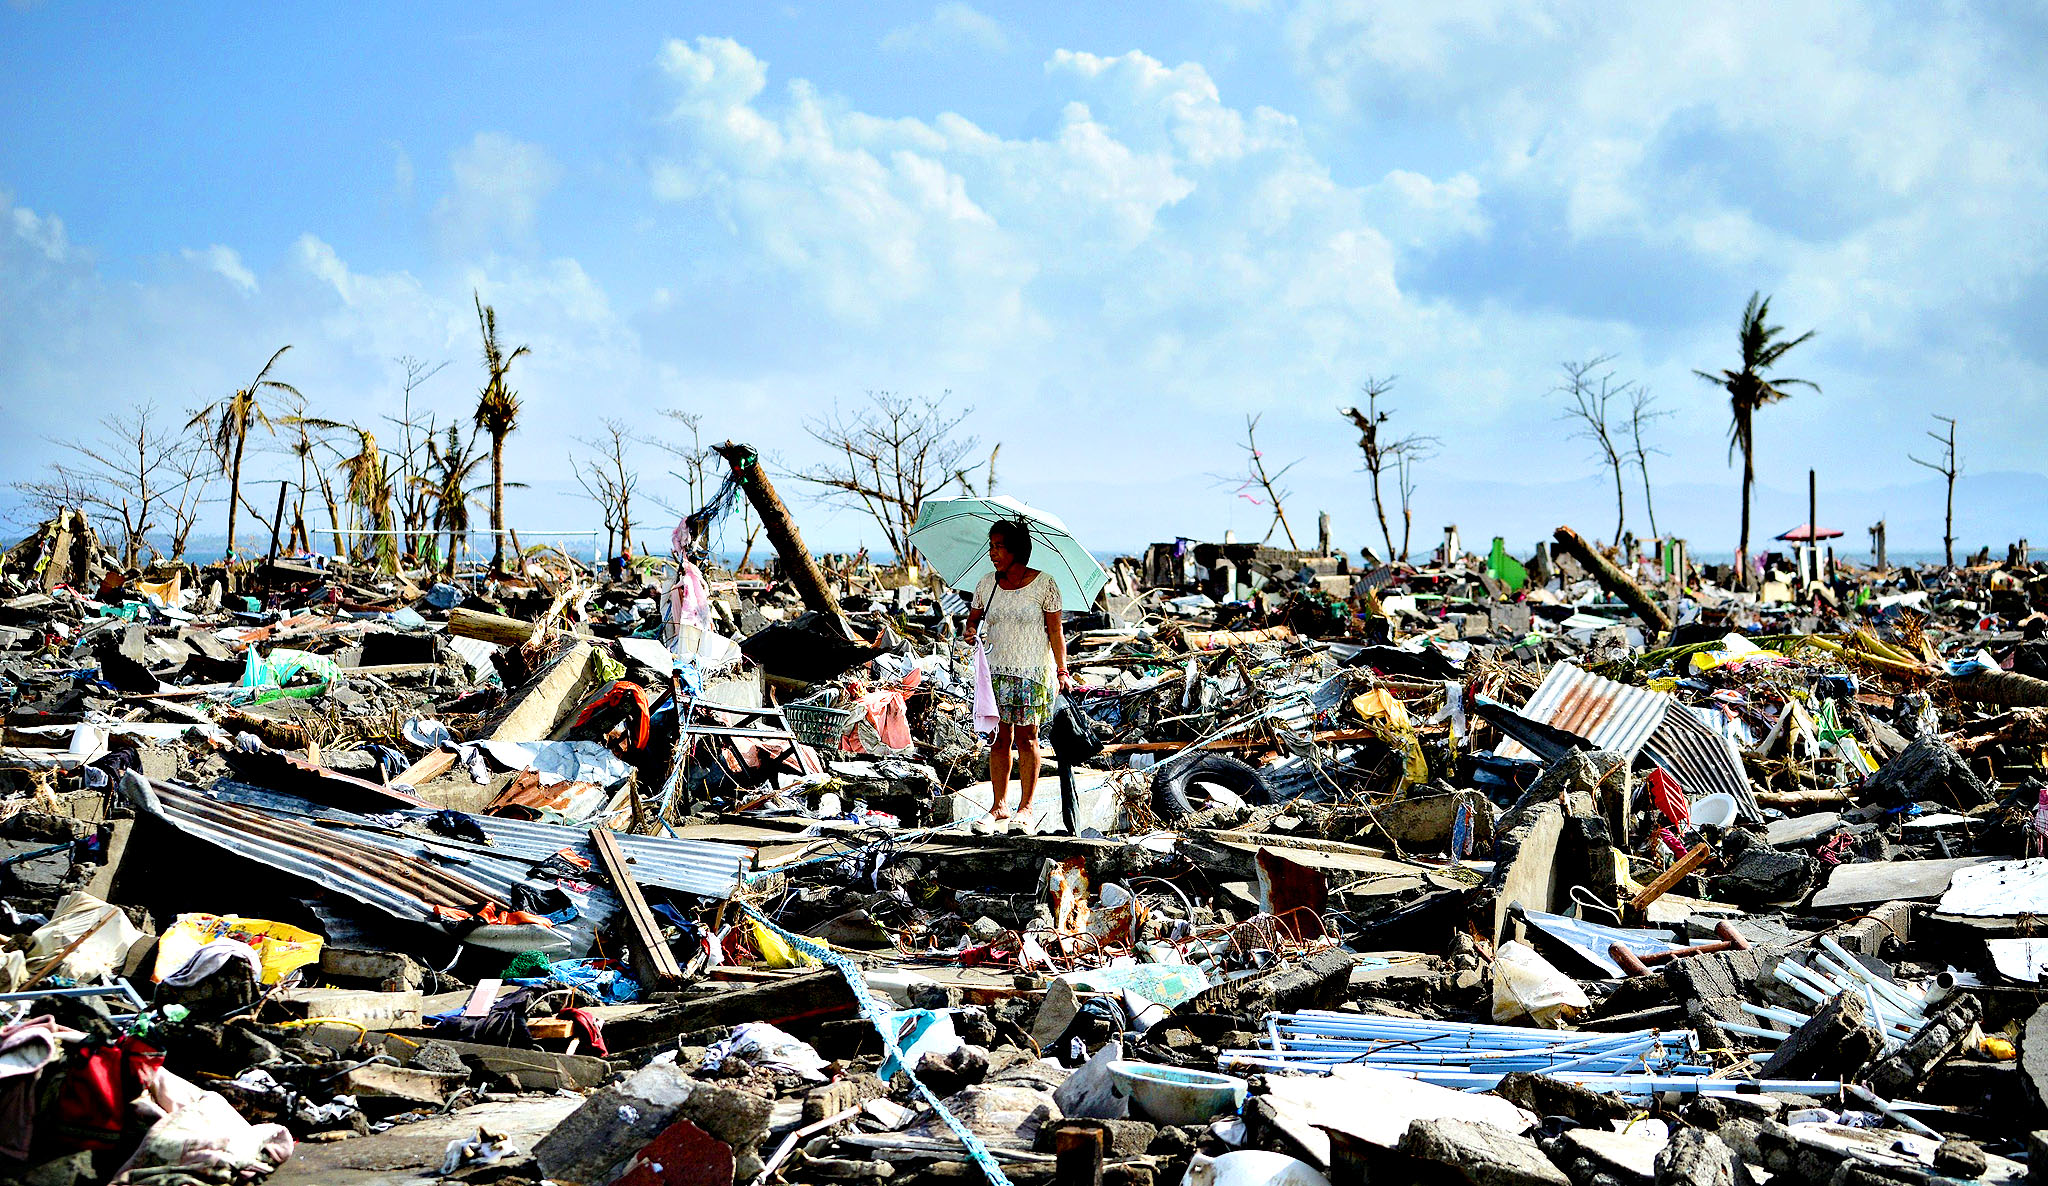 A surivor walks among the debris of houses destroyed by Super Typhoon Haiyan in Tacloban in the eastern Philippine island of Leyte on November 11, 2013. The United States, Australia and the United Nations mobilised emergency aid to the Philippines as the scale of the devastation unleashed by Super Typhoon Haiyan emerged on November 11.